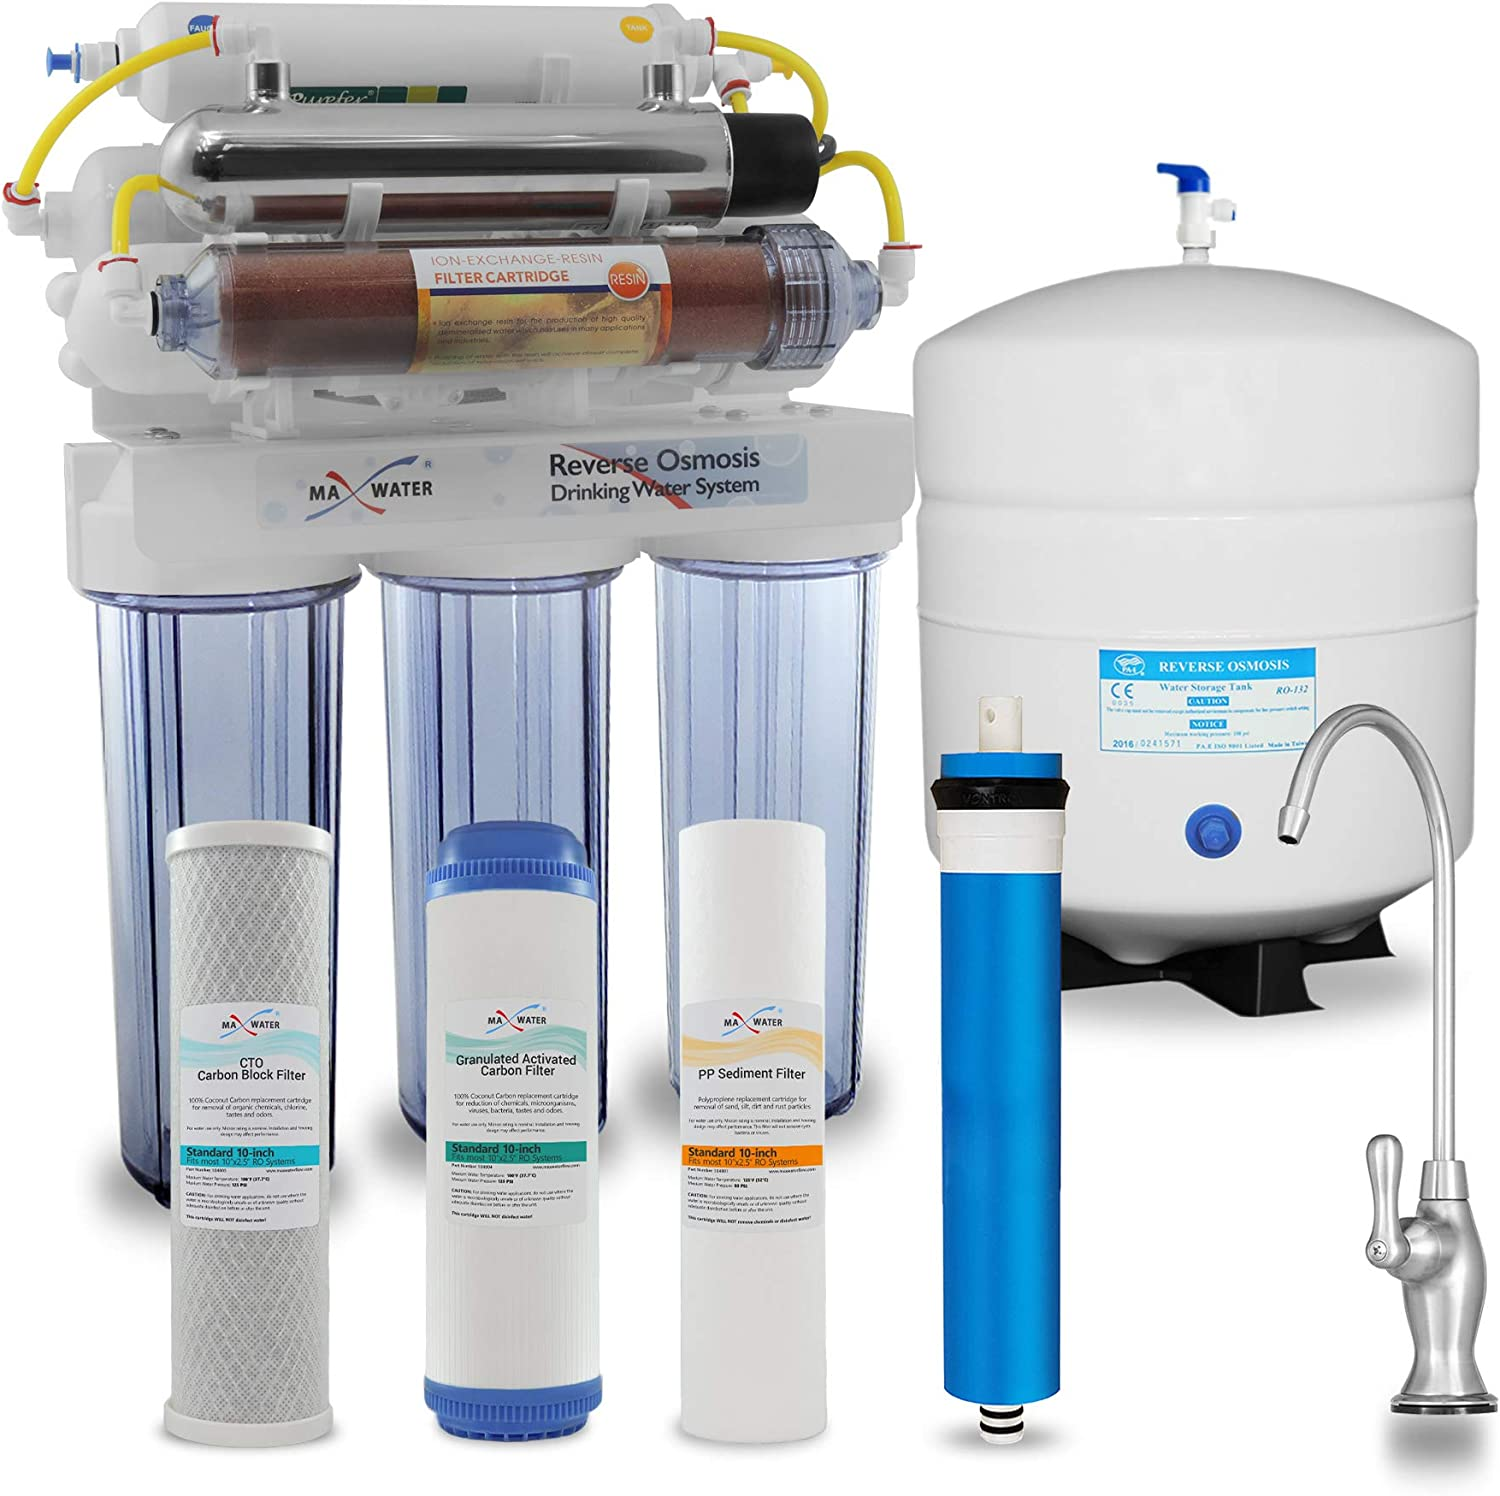 Max Water 12 Stage Home Reverse Osmosis System/Reverse Osmosis Water Filtration System/RO System Under Sink RO Water Purifier 50 GPD RODI System, UV Filter PH 5-1 Alkaline Water Filter CP D Faucet